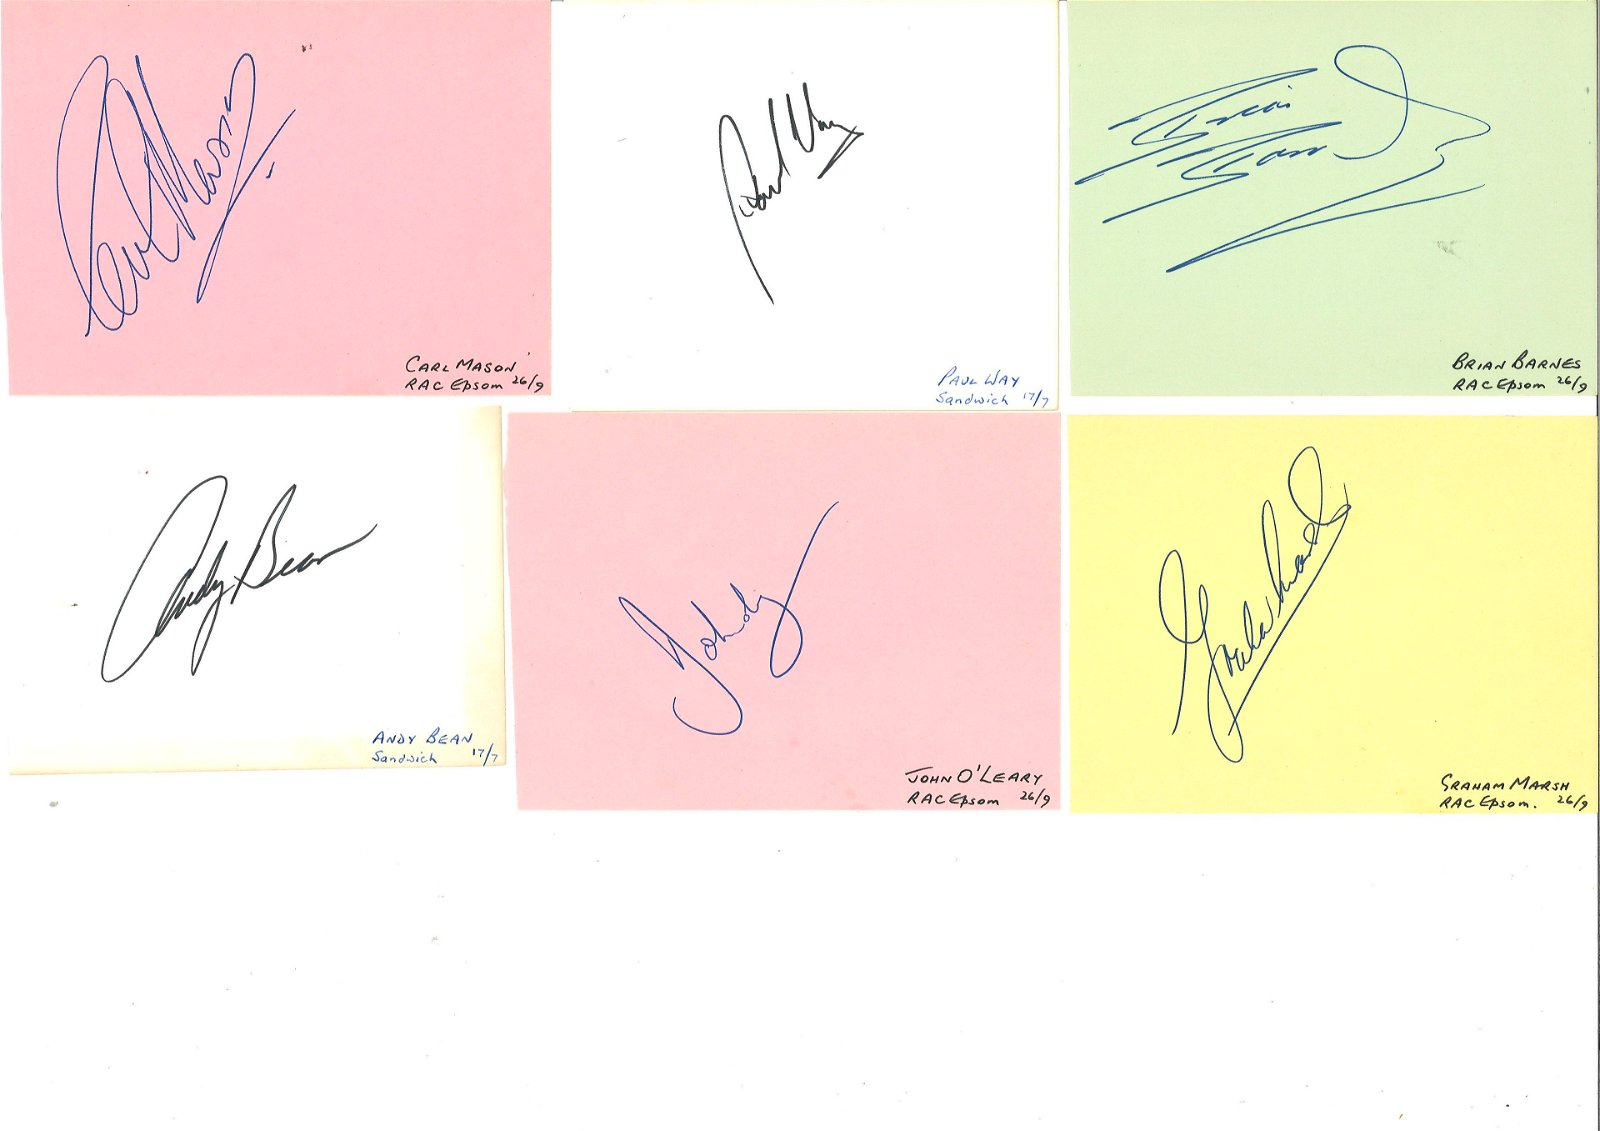 Signed album page collection. Includes John O'Leary,